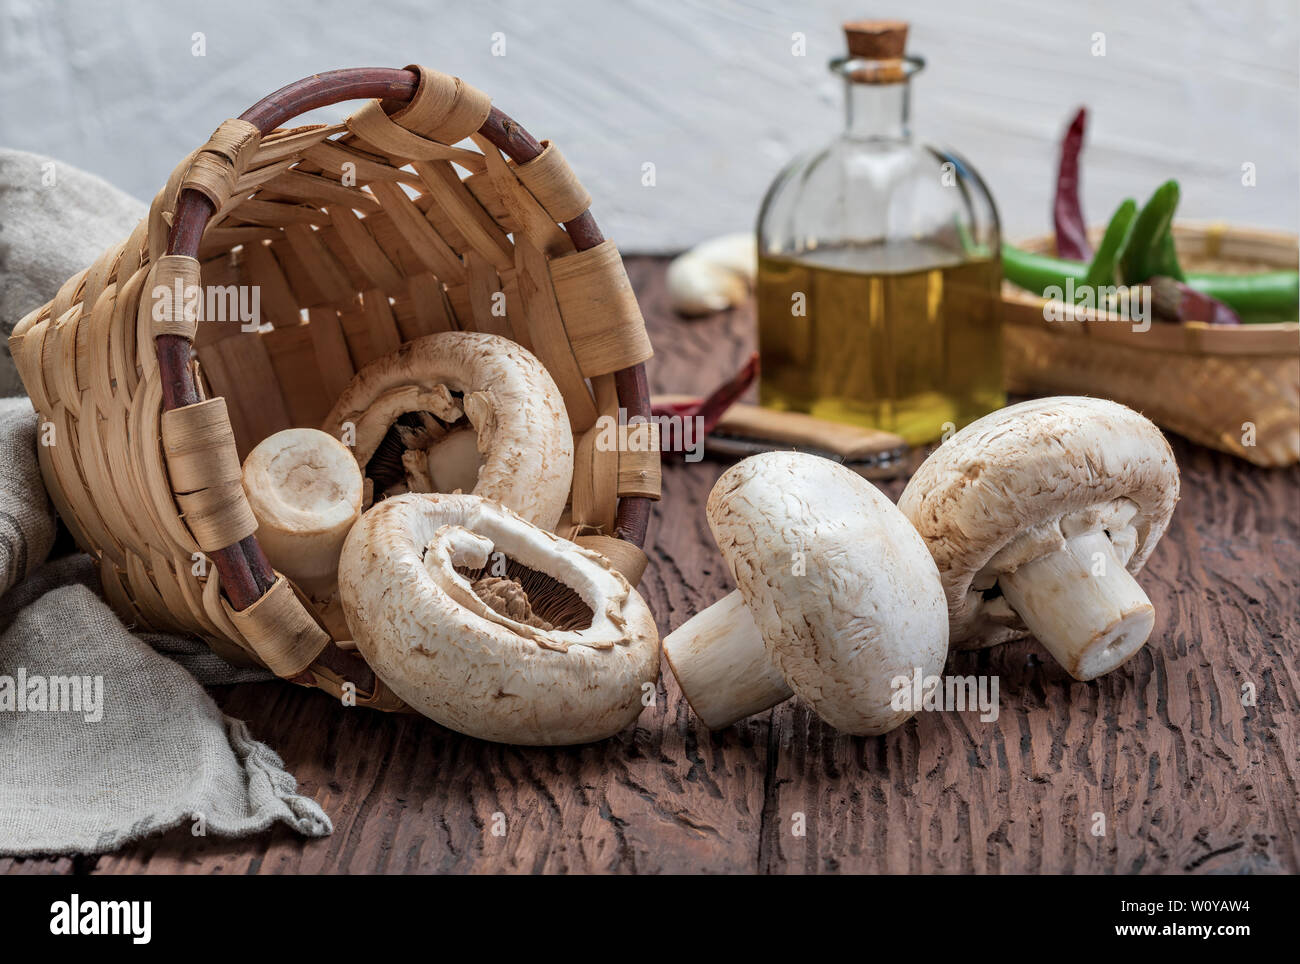 Basket of mushrooms (champignon, cut feet, Agaricus Bisporus) raw (uncooked). With several ingredients (olive oil, garlic and chilli pepper). Wood bac - Stock Image